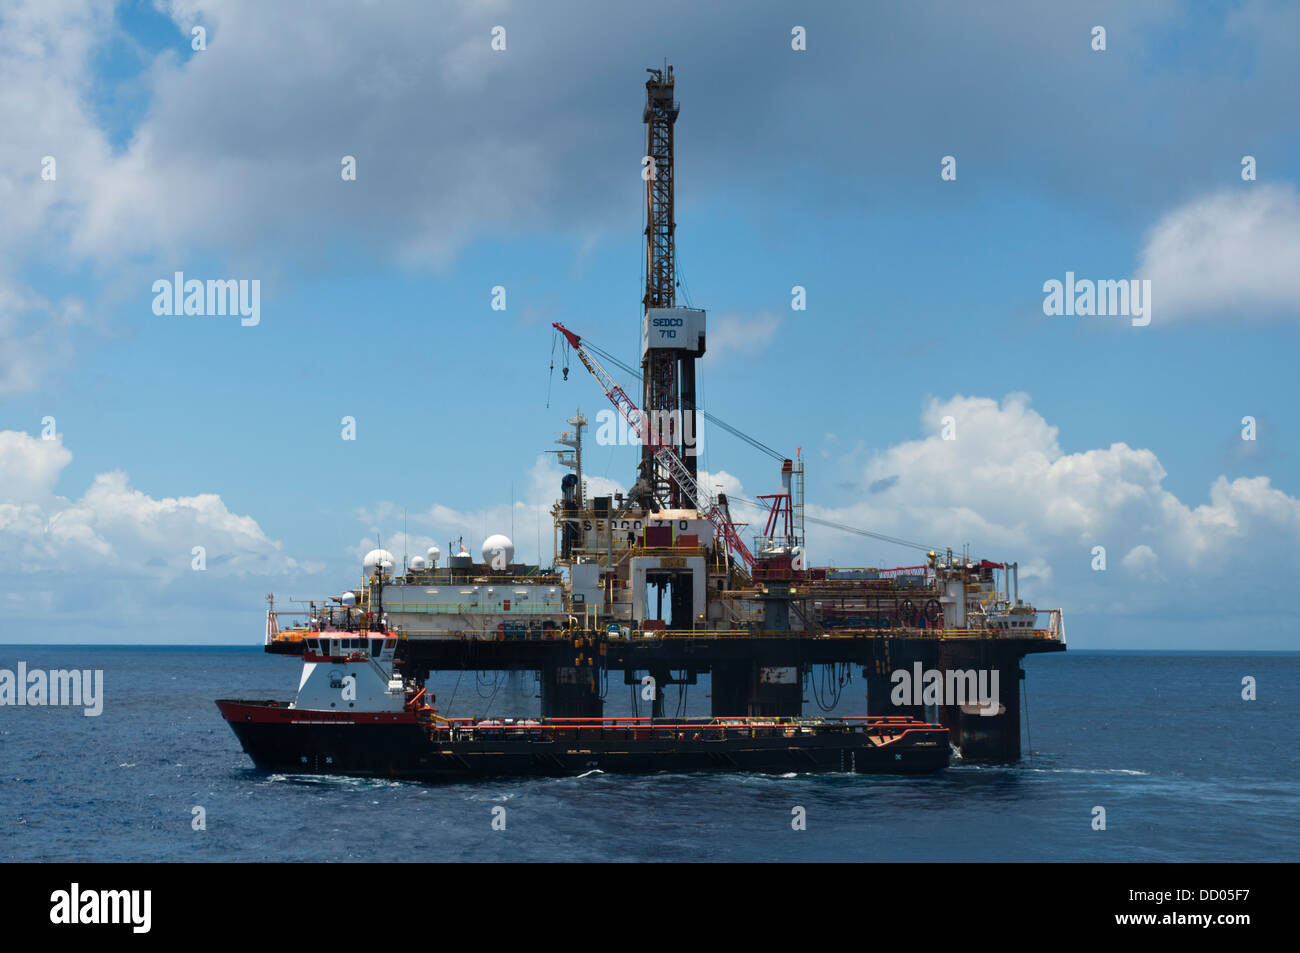 SS 43 oil drilling rig working for Petrobras offshore Campos basin, Rio de Janeiro, Brazil, with supply vessel along - Stock Image